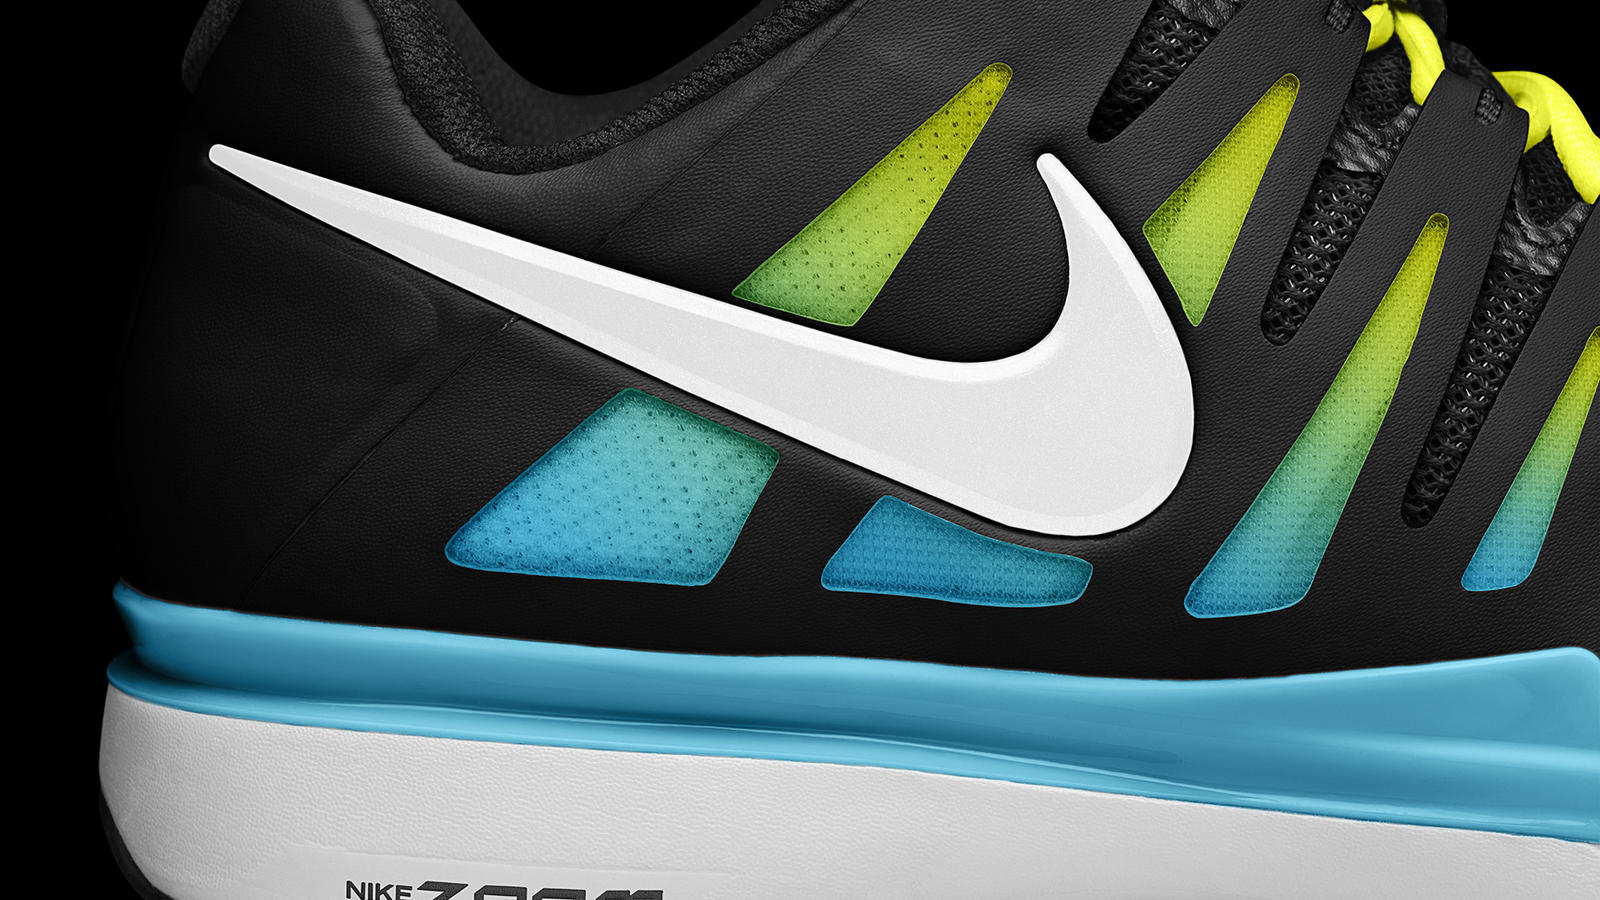 Sp13_TN_NIKEiD_Vapor9_Detail_5